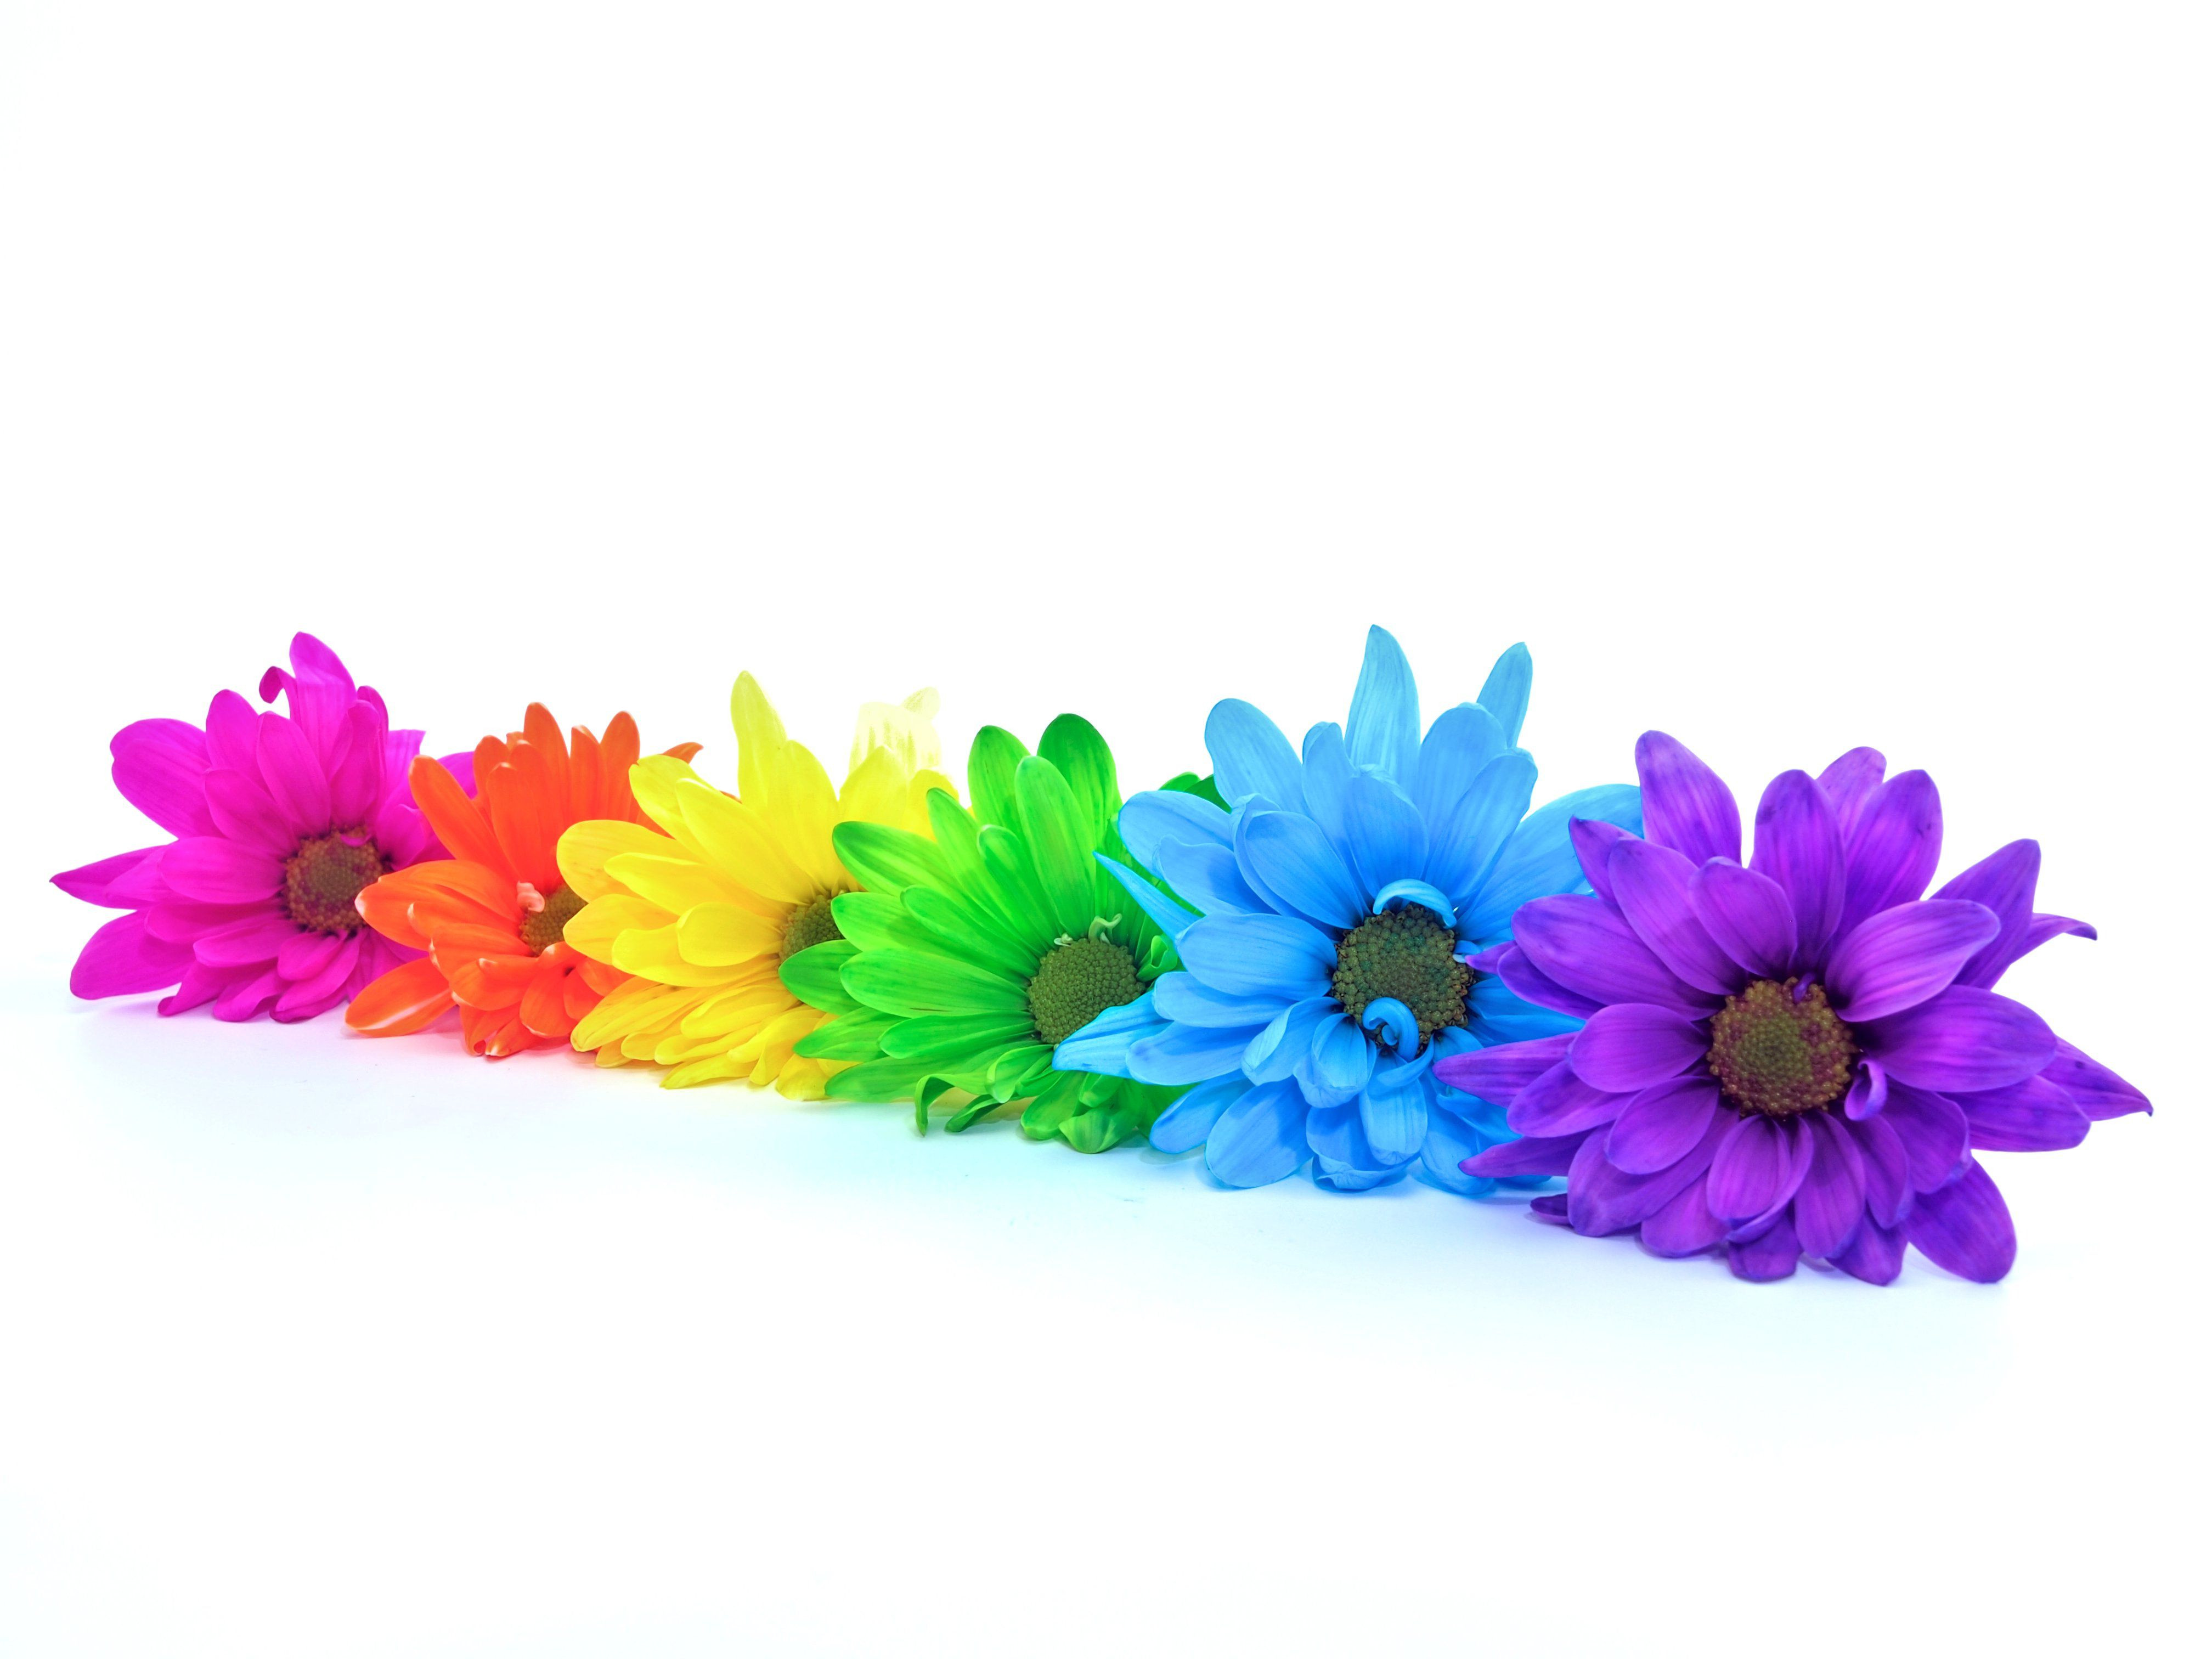 fake flowers in vase with fake water of how to make colored flowers in rainbow daisies 487382881 57f11cda5f9b586c35fae74e